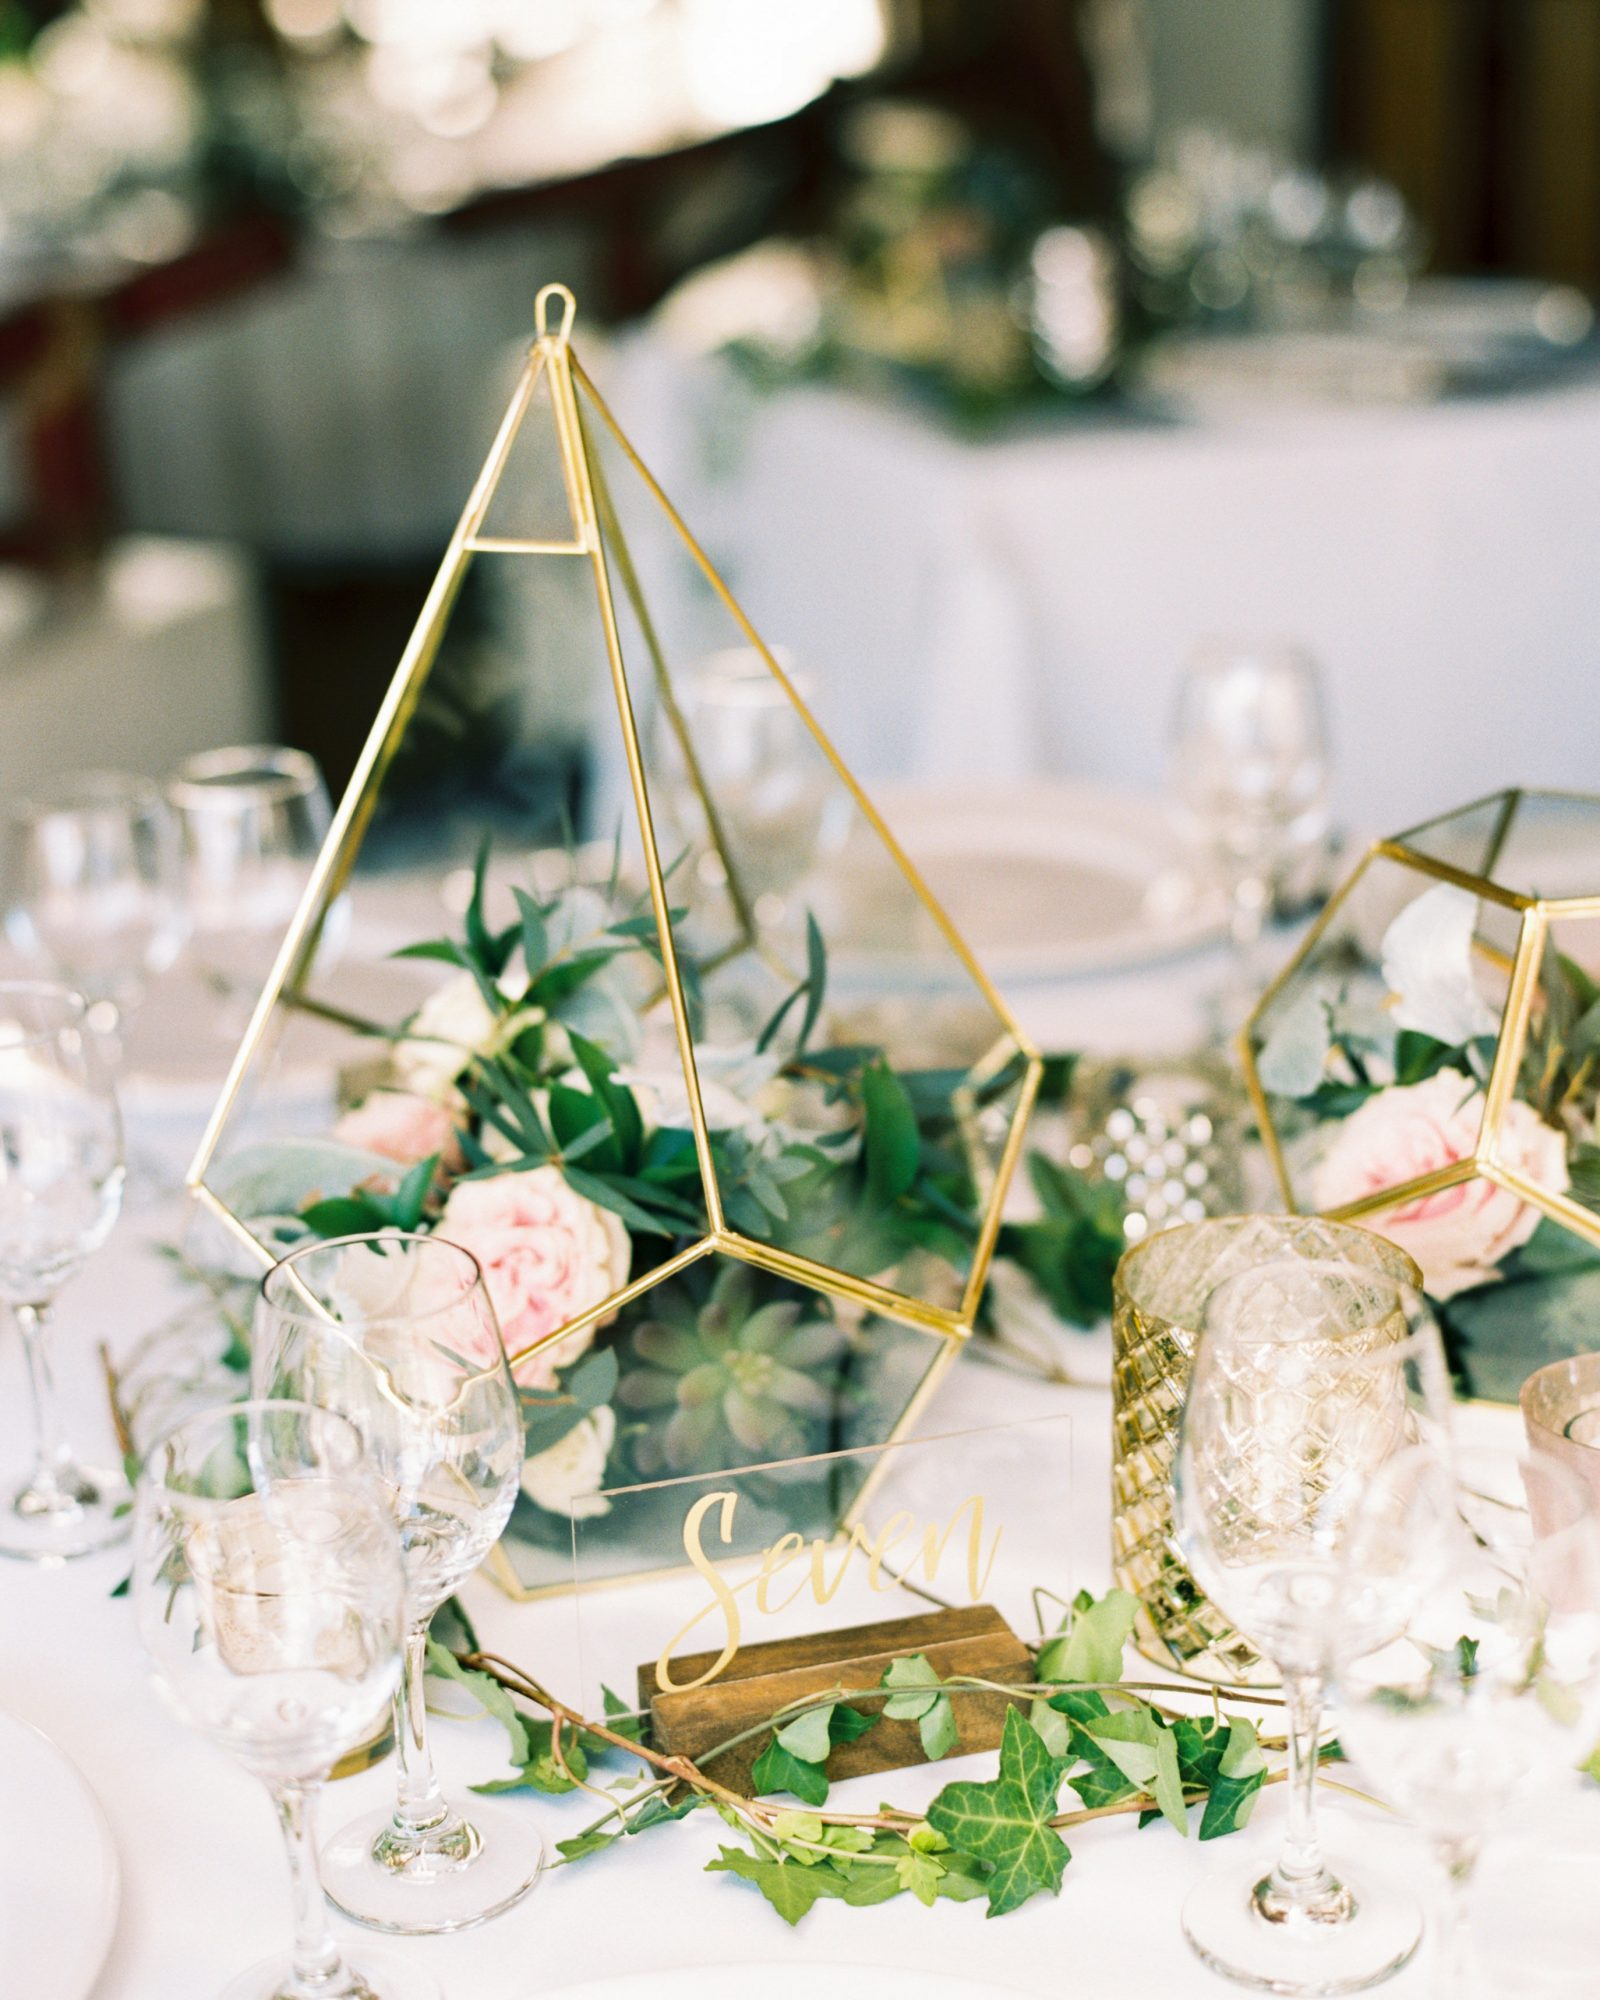 18 Inventive Ways To Incorporate Terrariums Into Your Wedding D Eacute Cor Martha Stewart